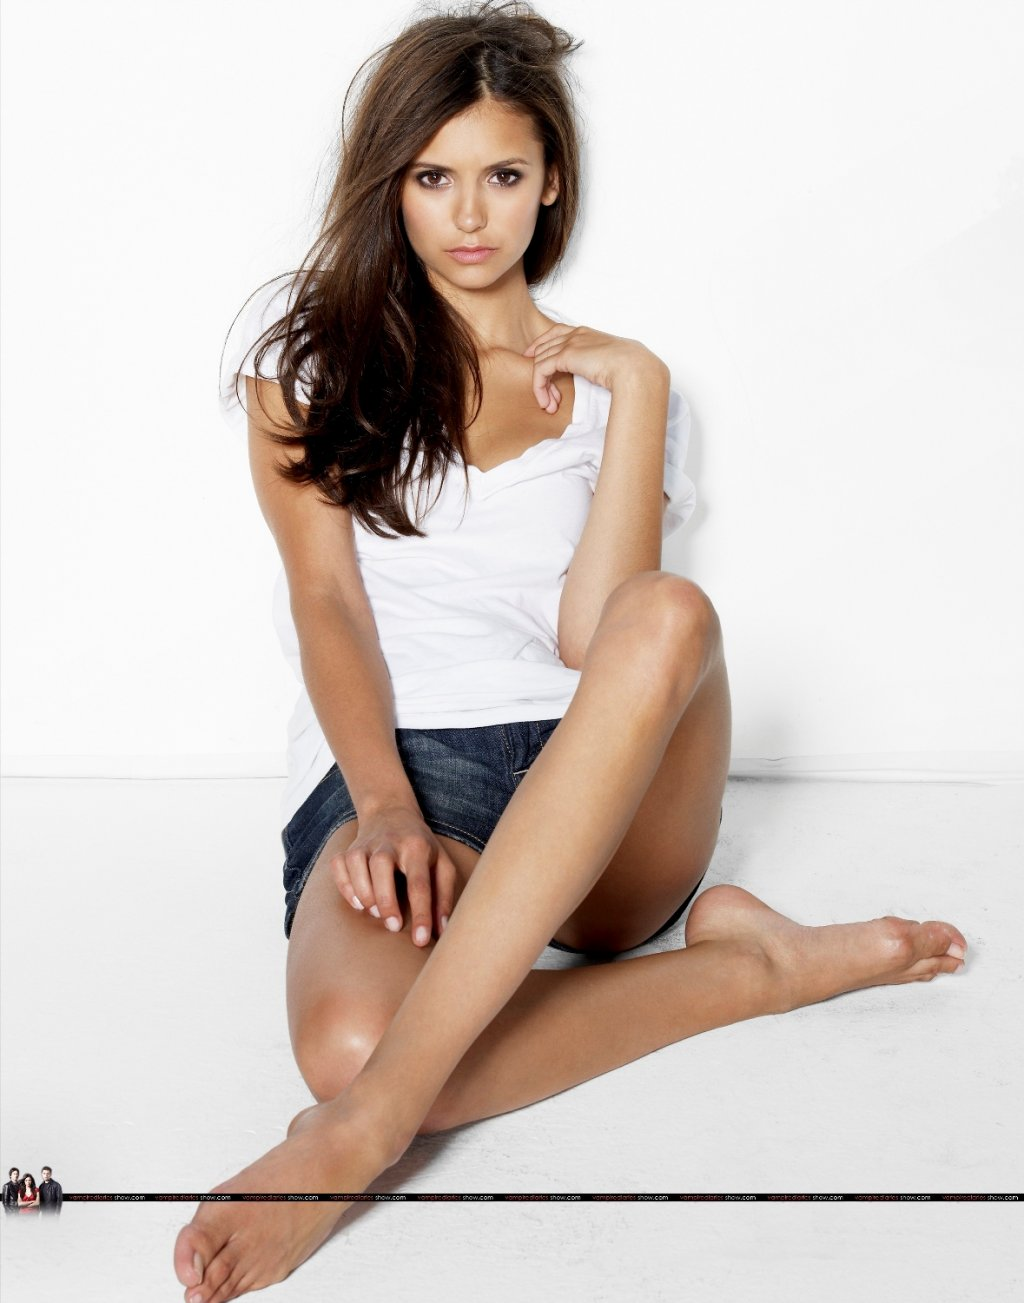 Hollywood Nina Dobrev Hot Images Gallery 2012